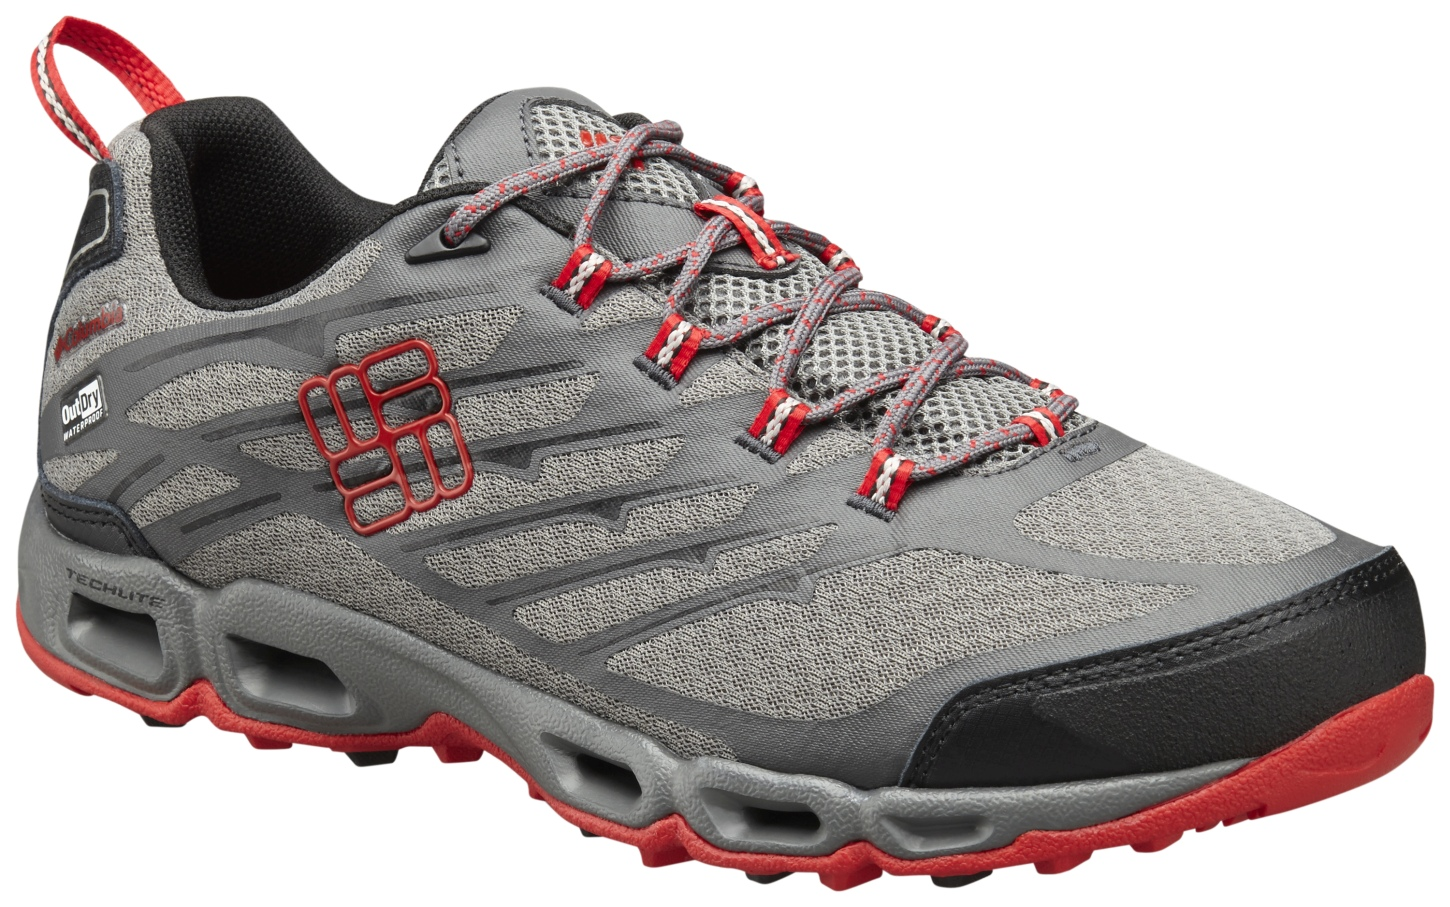 Columbia Men's Ventrailia II Outdry® Shoes City Grey, Bright Red-30